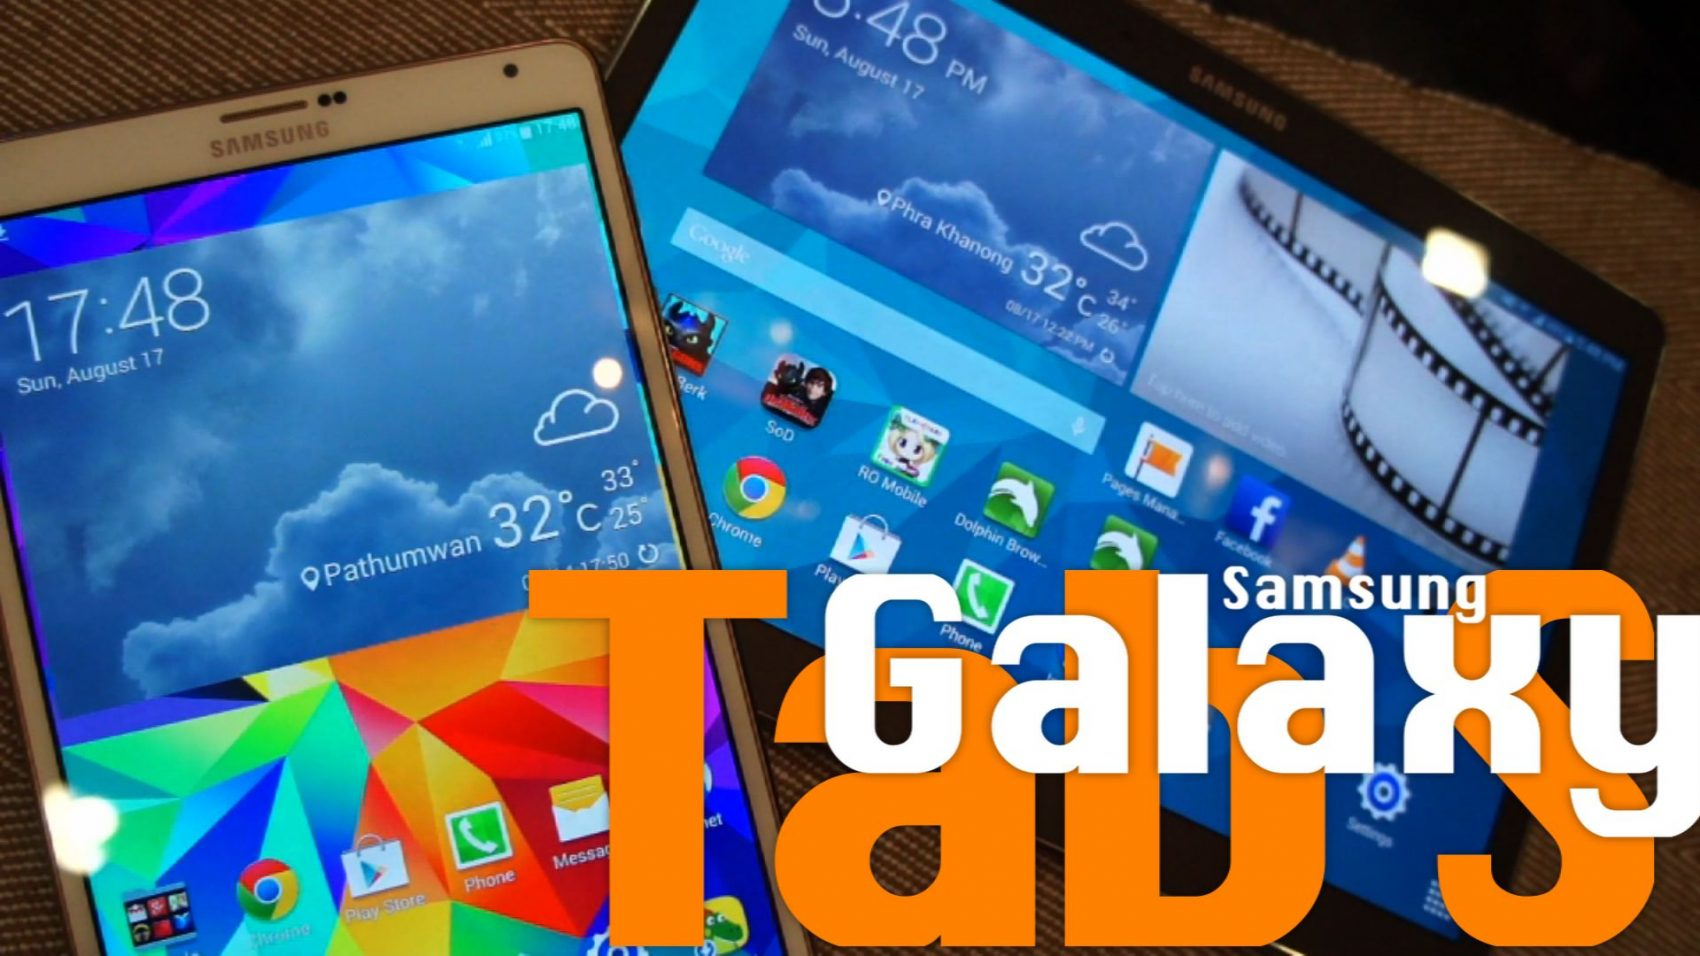 Power ON #087 : Samsung Galaxy Tab S 8.4, 10.5